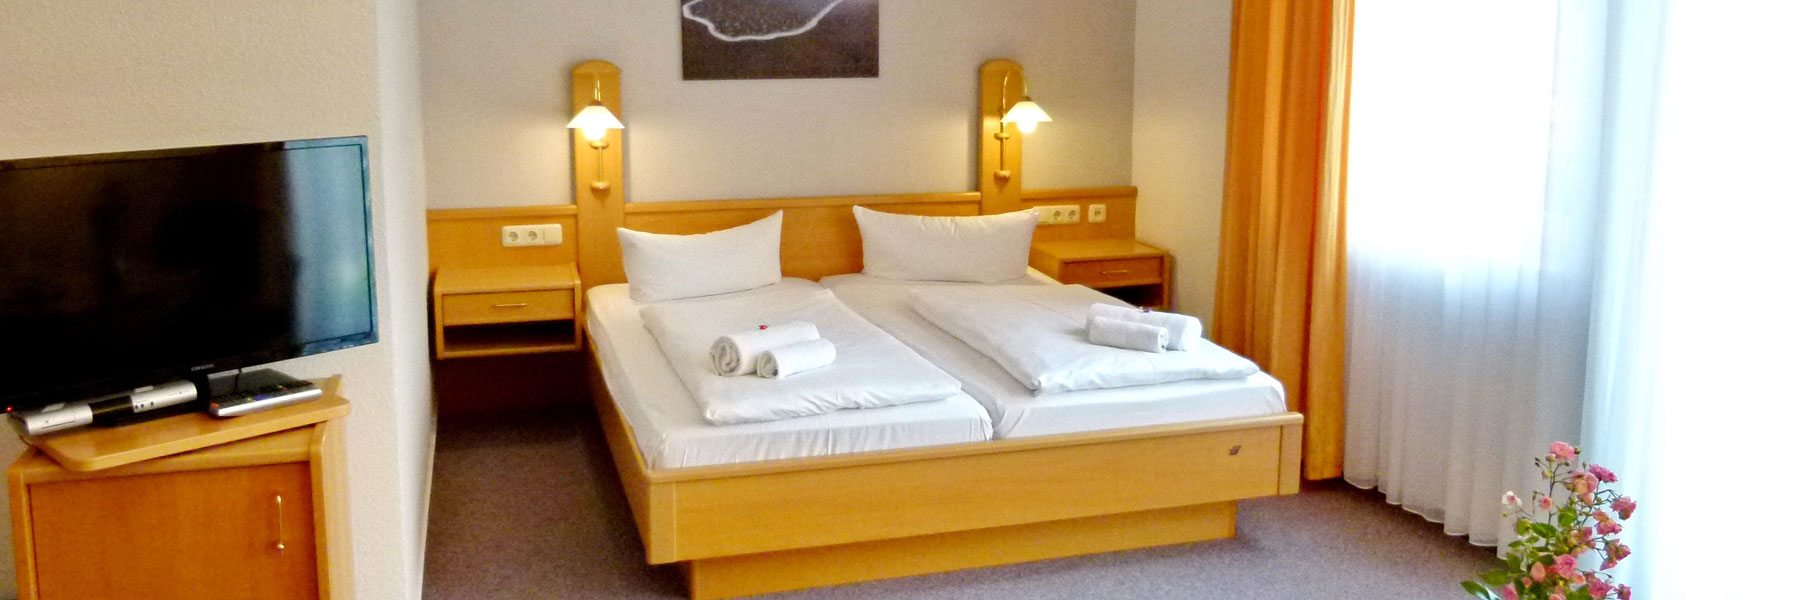 Großes Doppelzimmer - Hotel-Pension Pastow